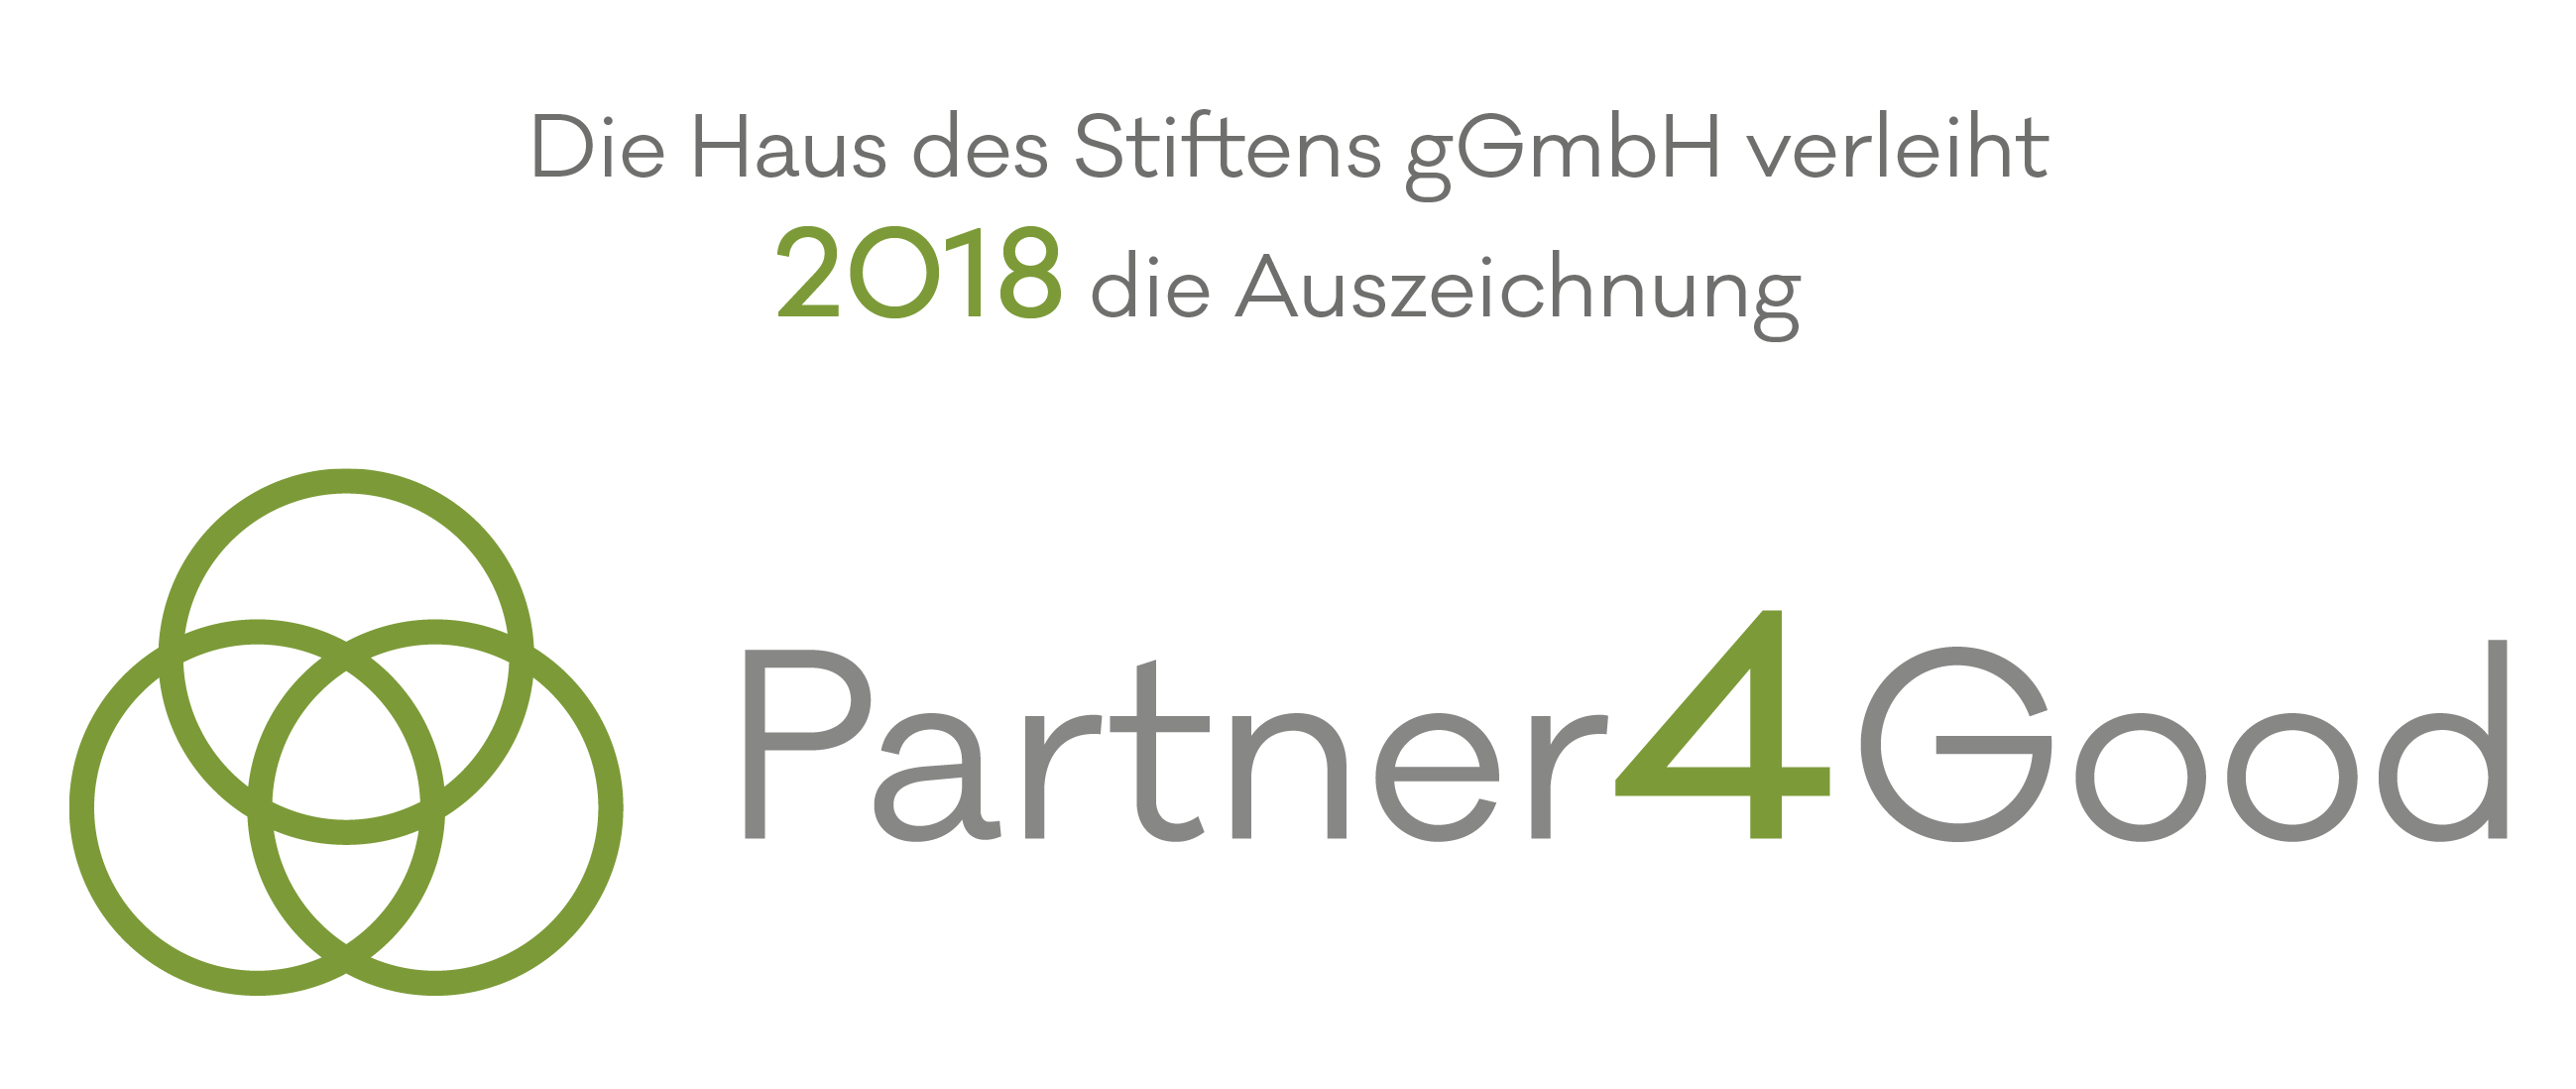 Partner4Good Award